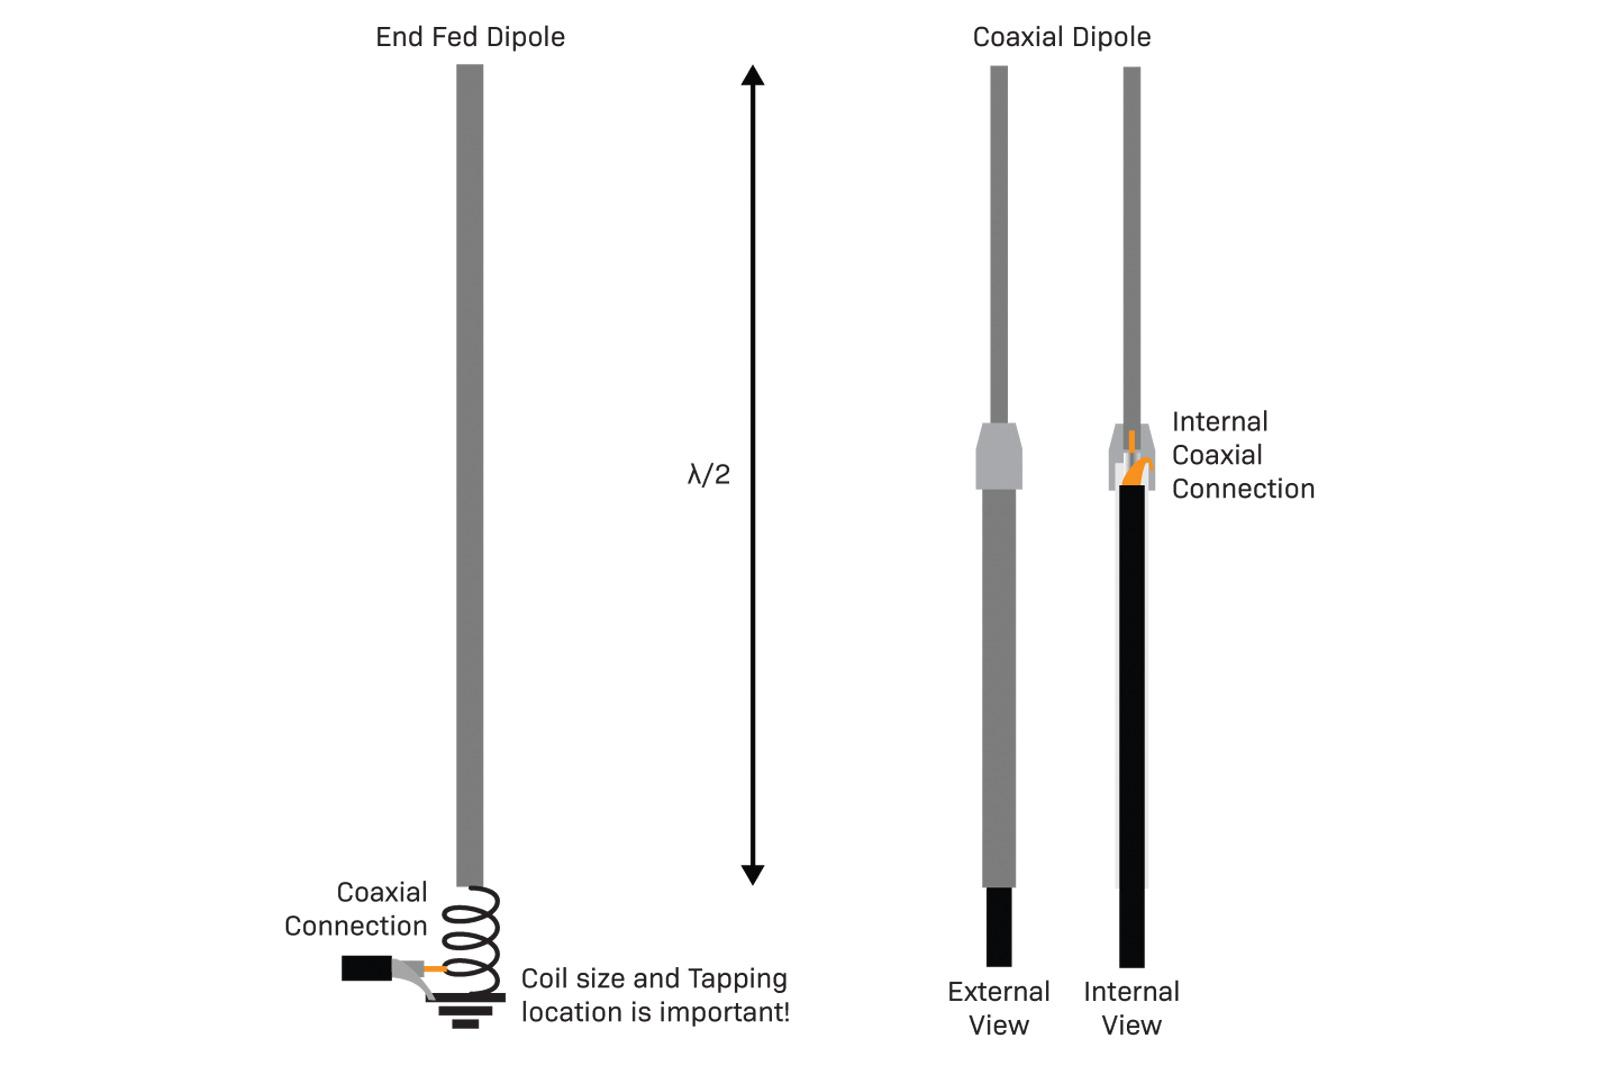 coaxial or end fed dipole